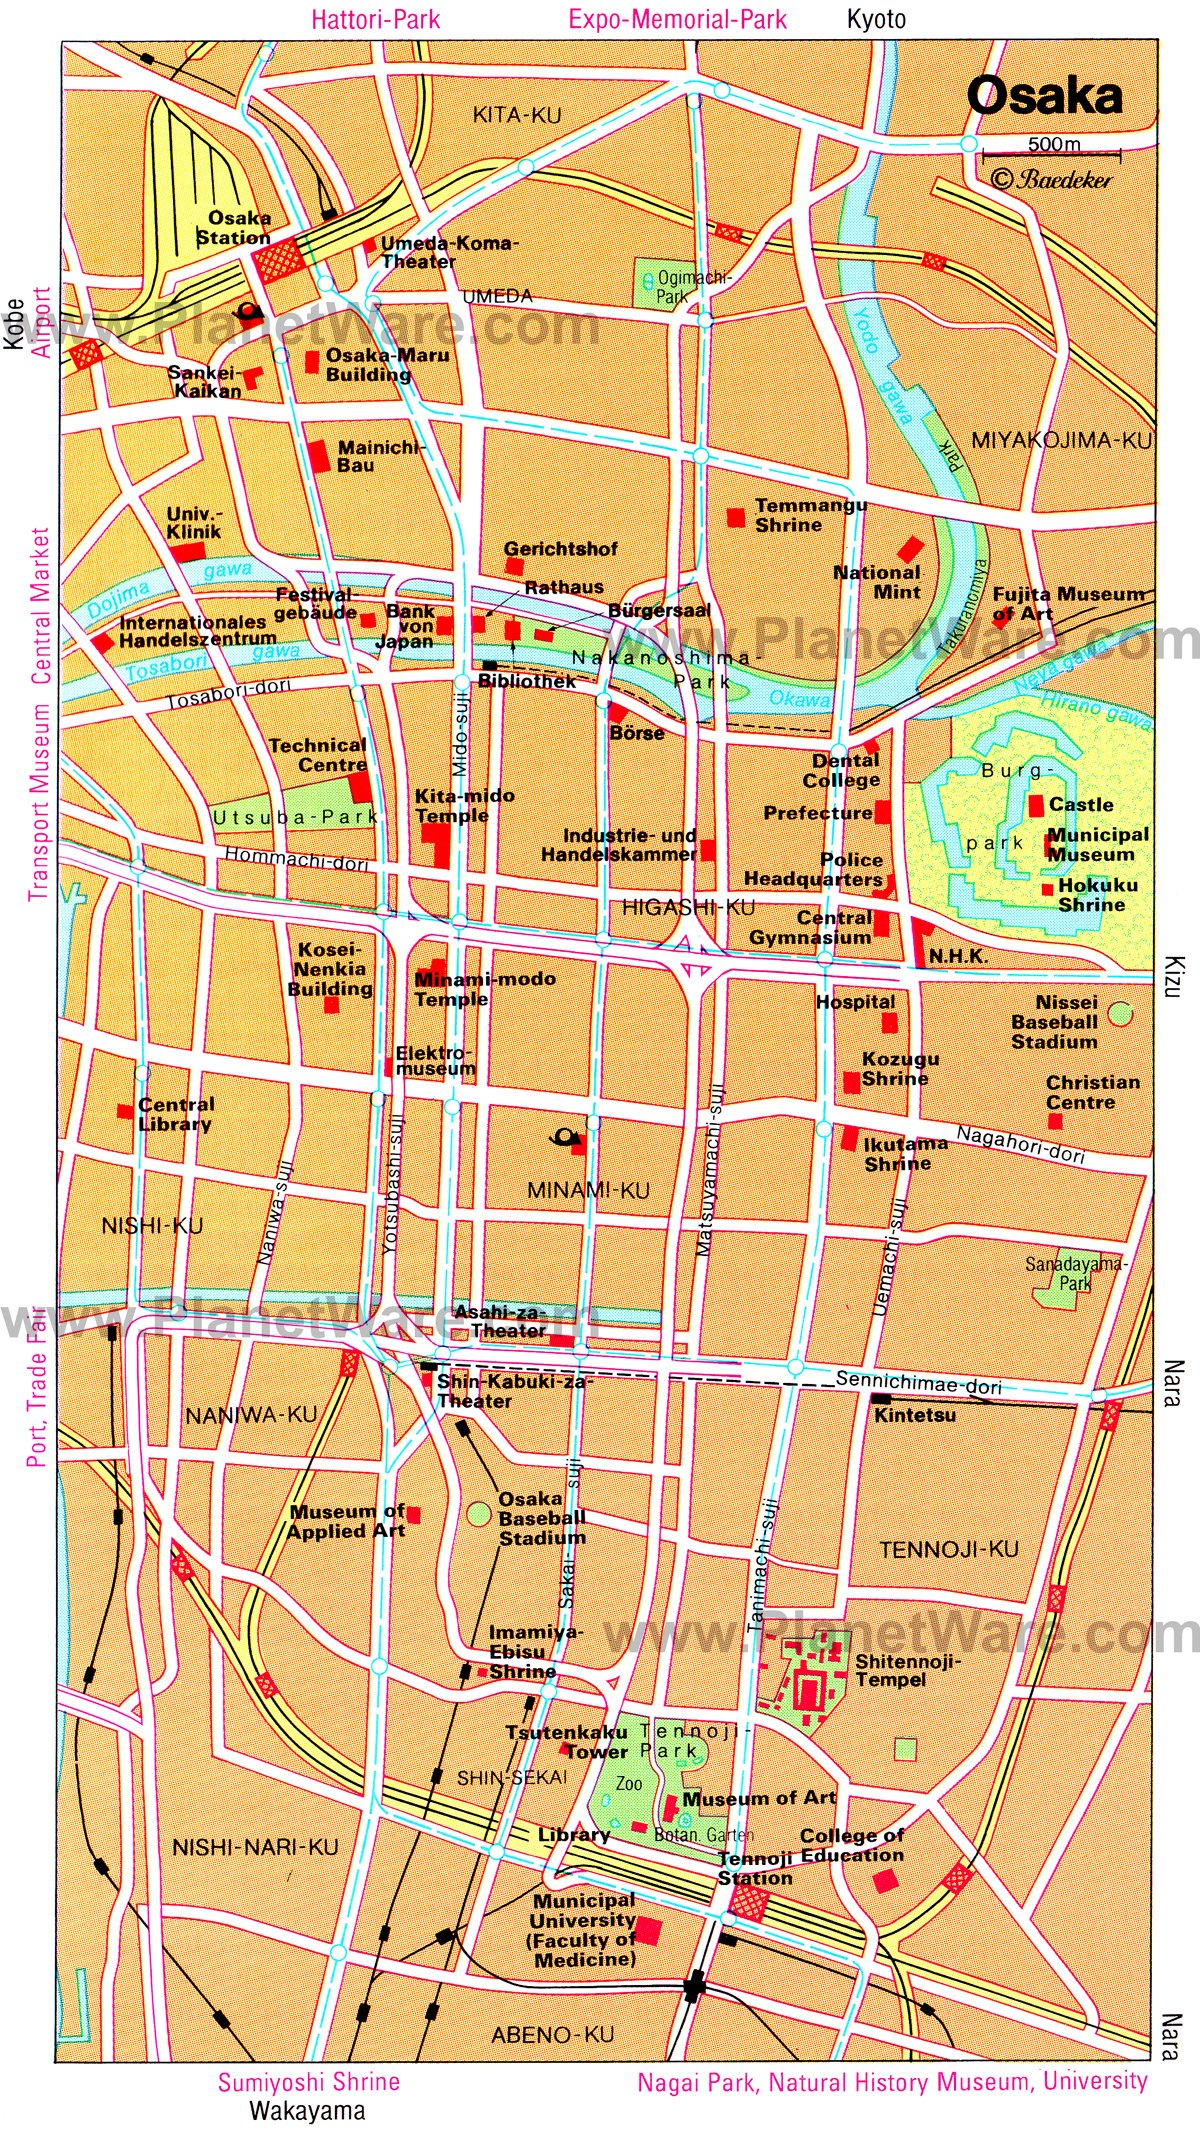 10 TopRated Tourist Attractions in Osaka – Shanghai Tourist Attractions Map